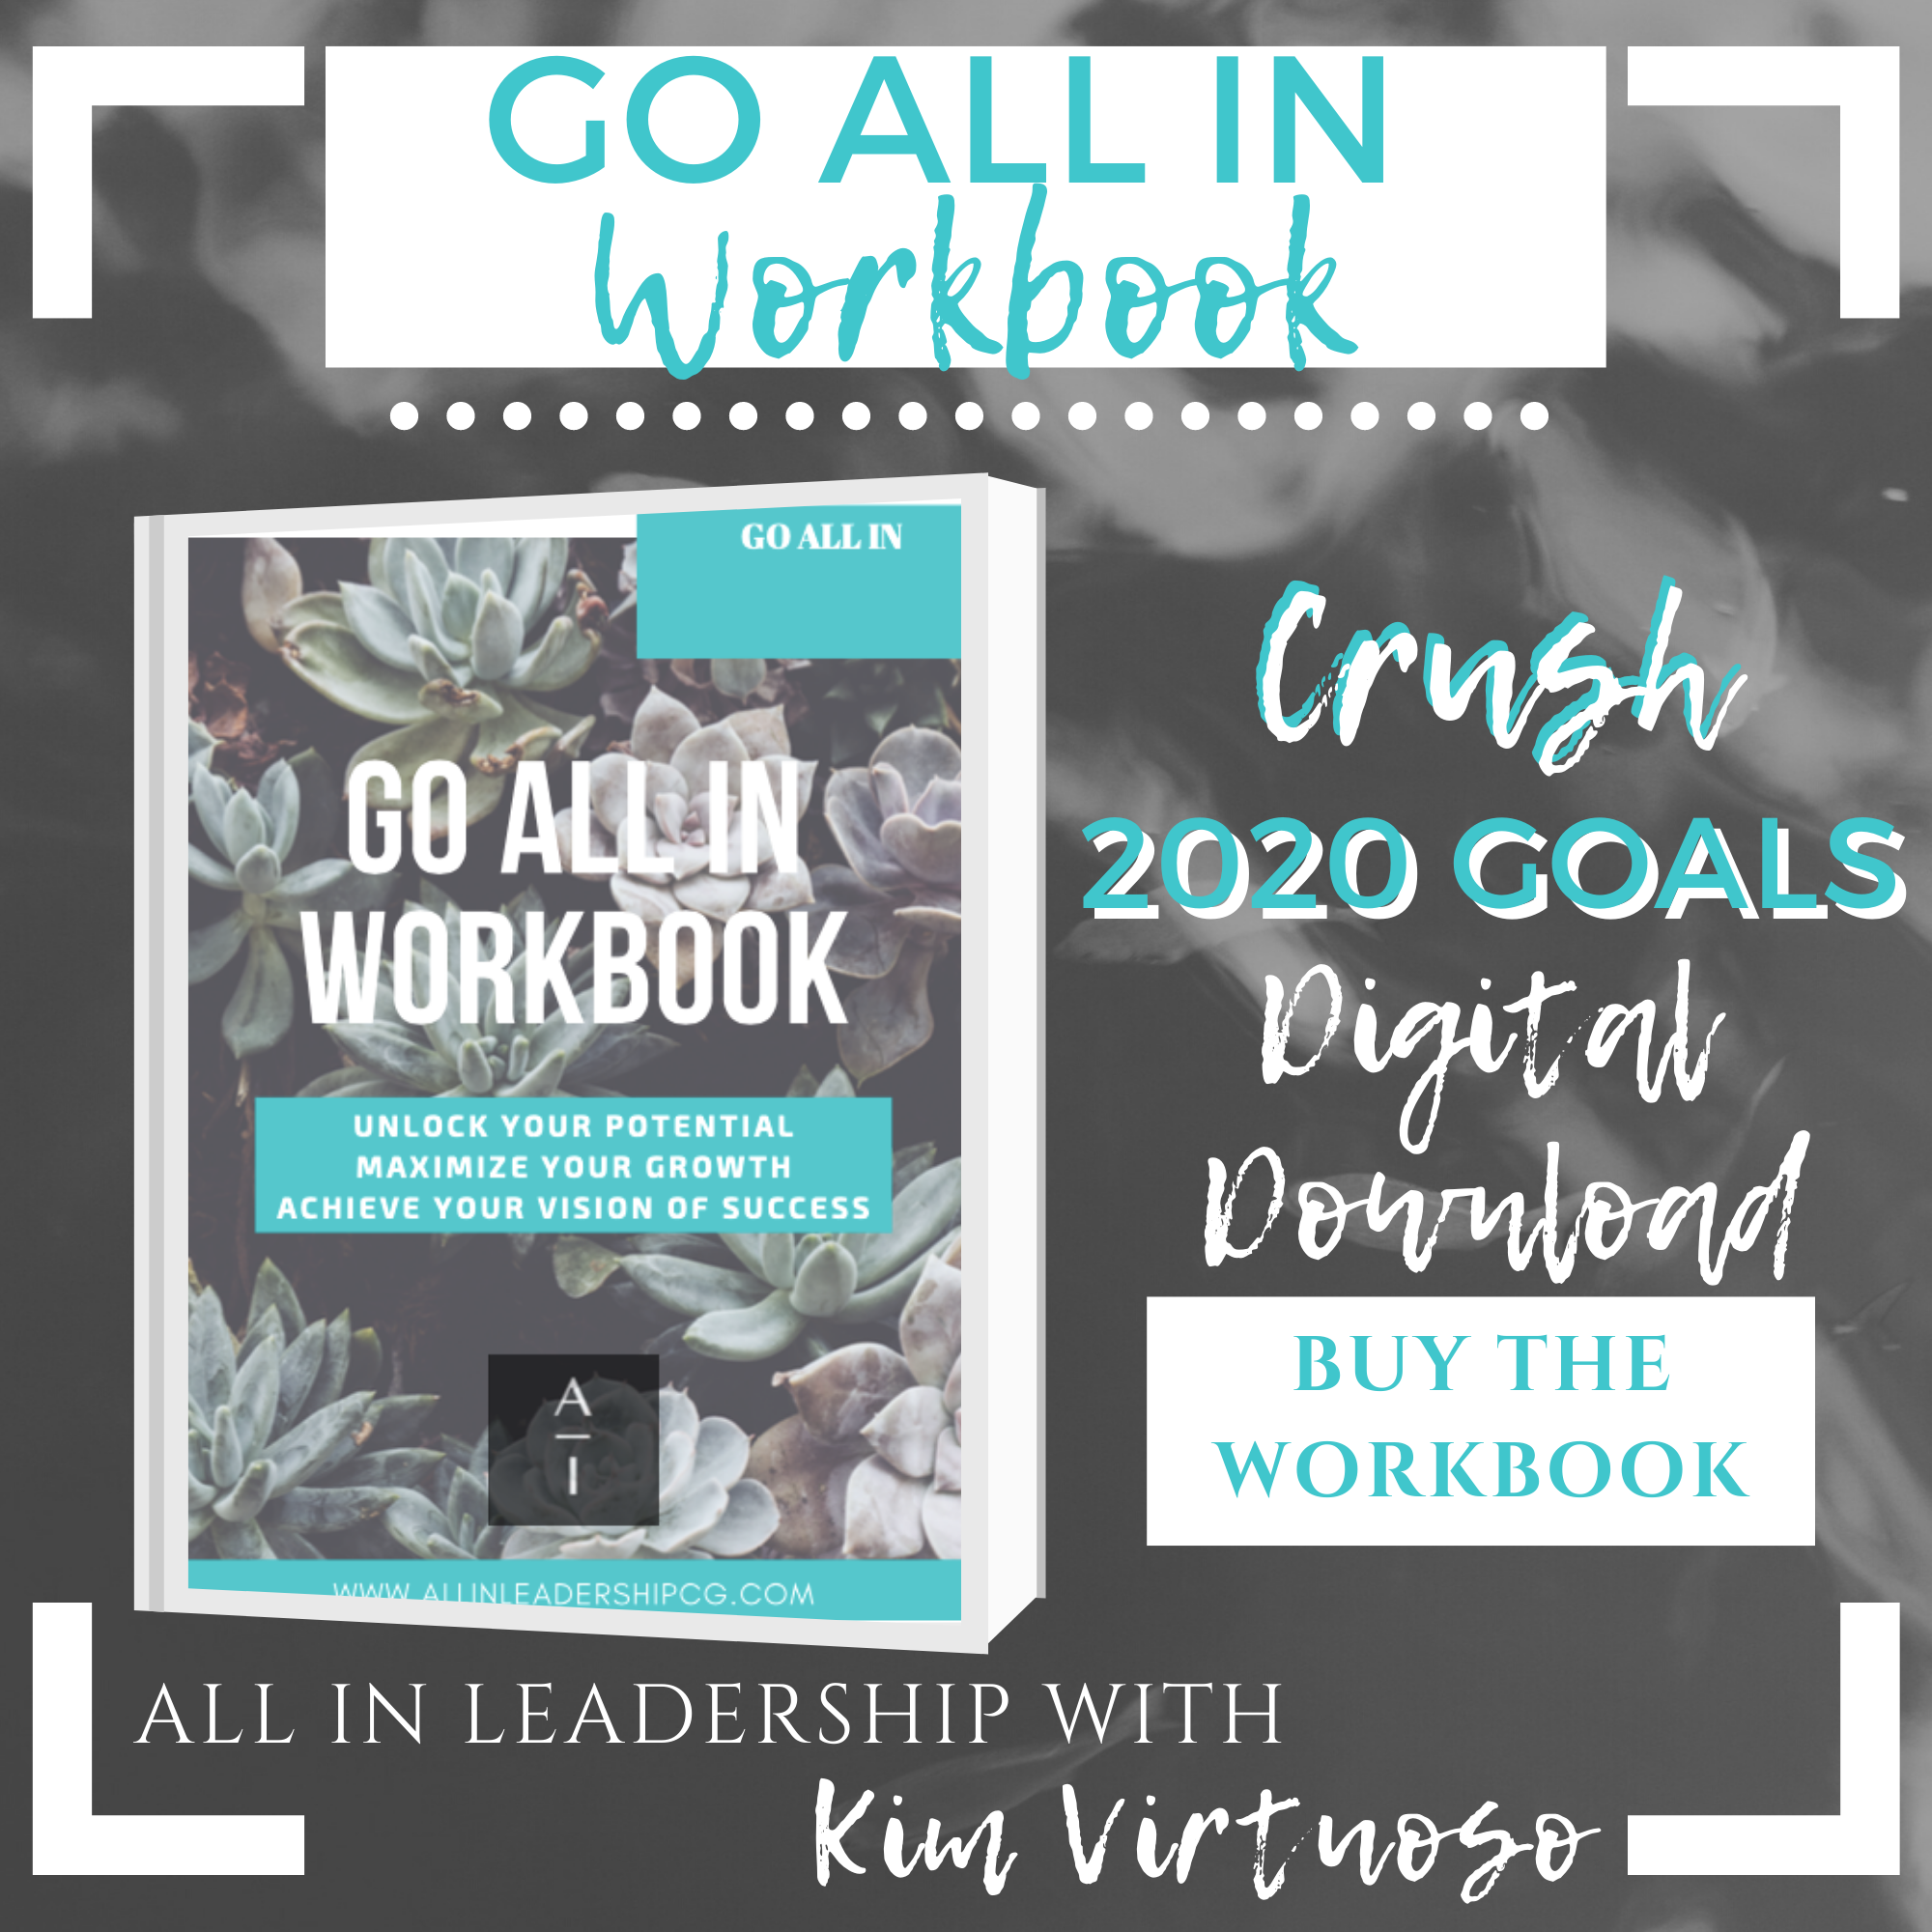 Go All In Workbook